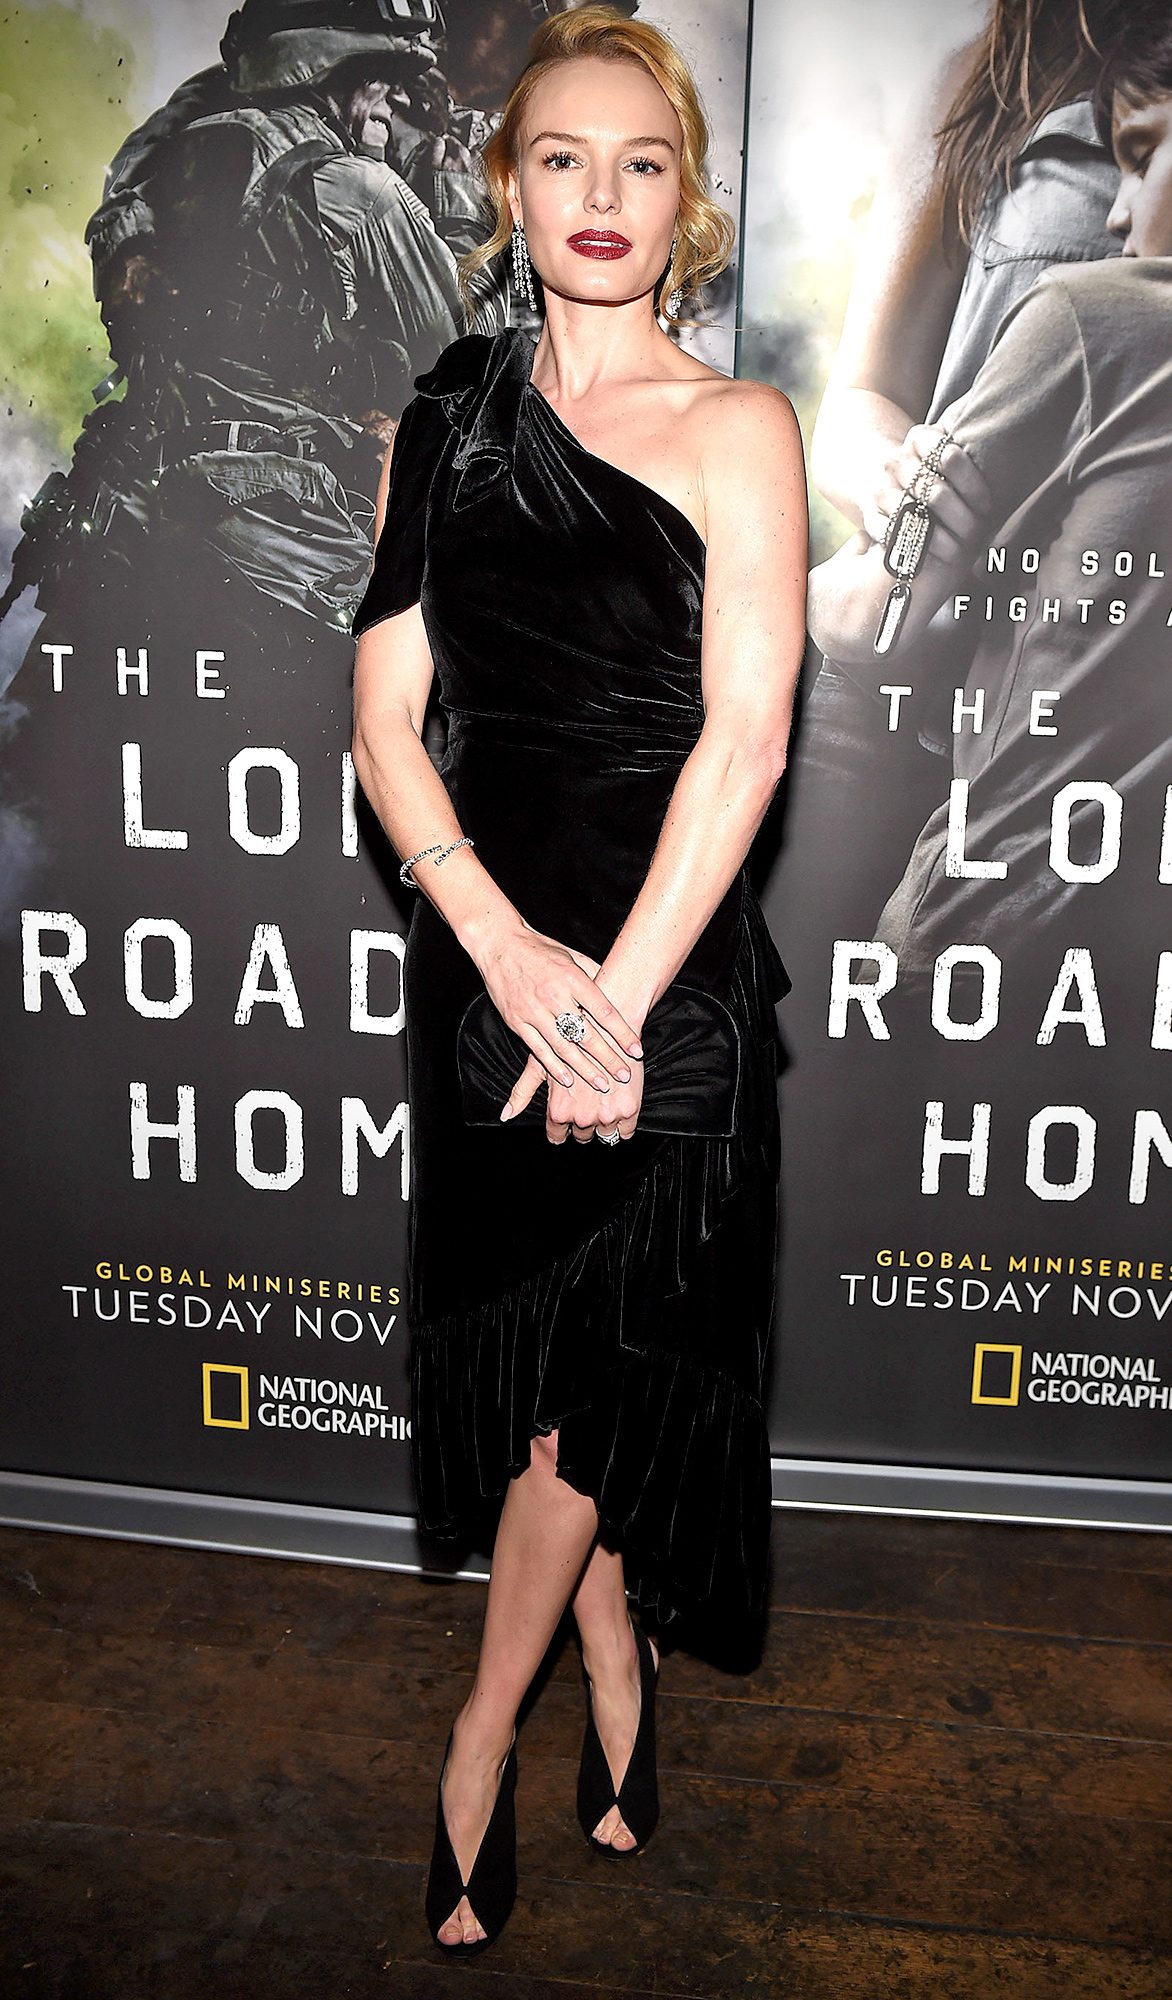 Stars seen at the Final Episode Screening of National Geographic's 'The Long Road Home' in Hollywood